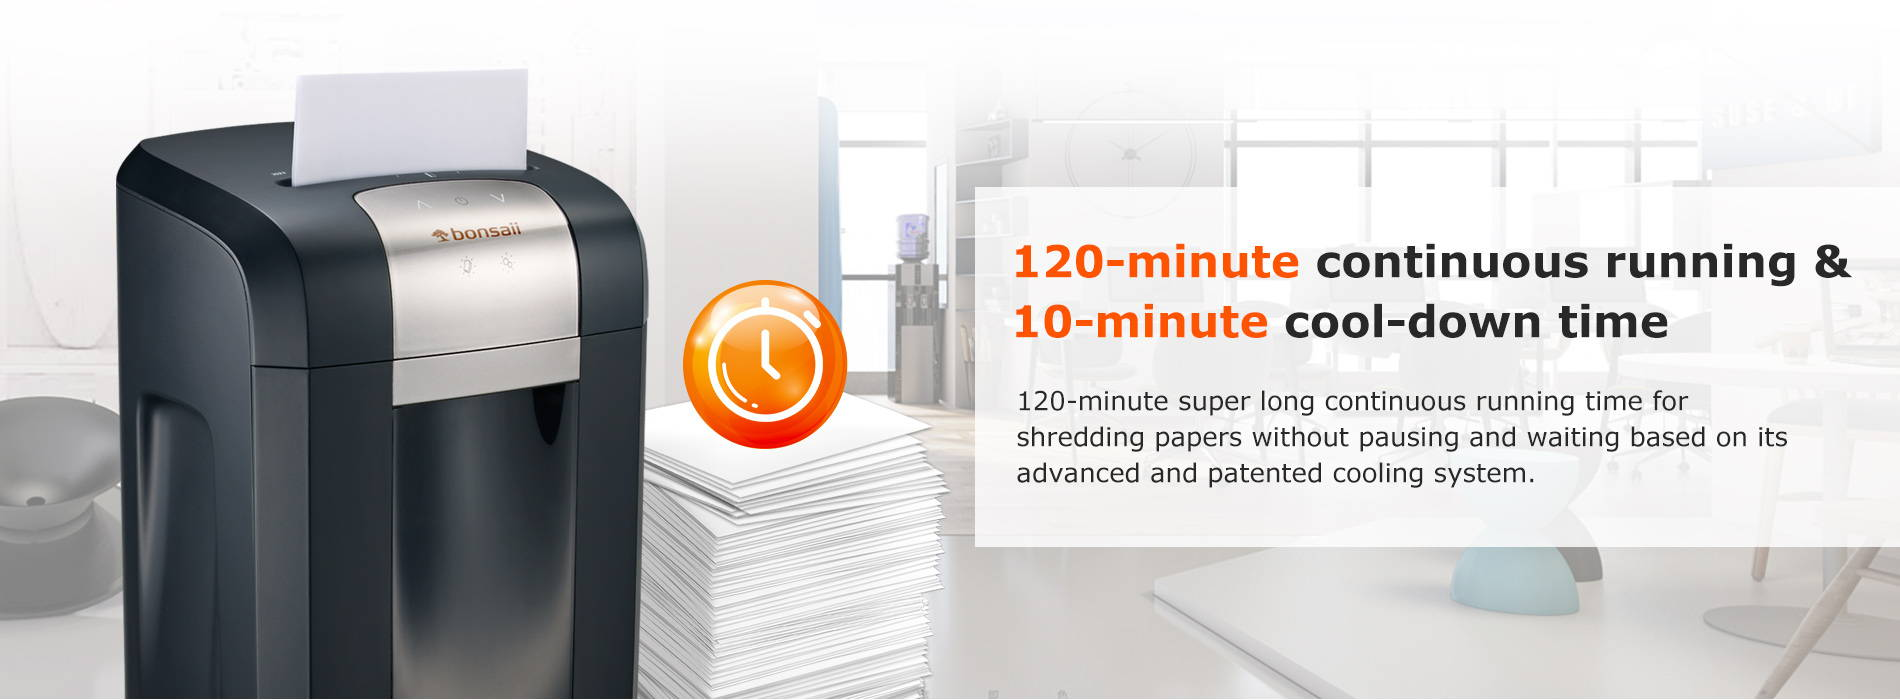 120-minute continuous running & 10-minute cool-down time 120-minute super long continuous running time for shredding papers without pausing and waiting based on its advanced and patented cooling system.